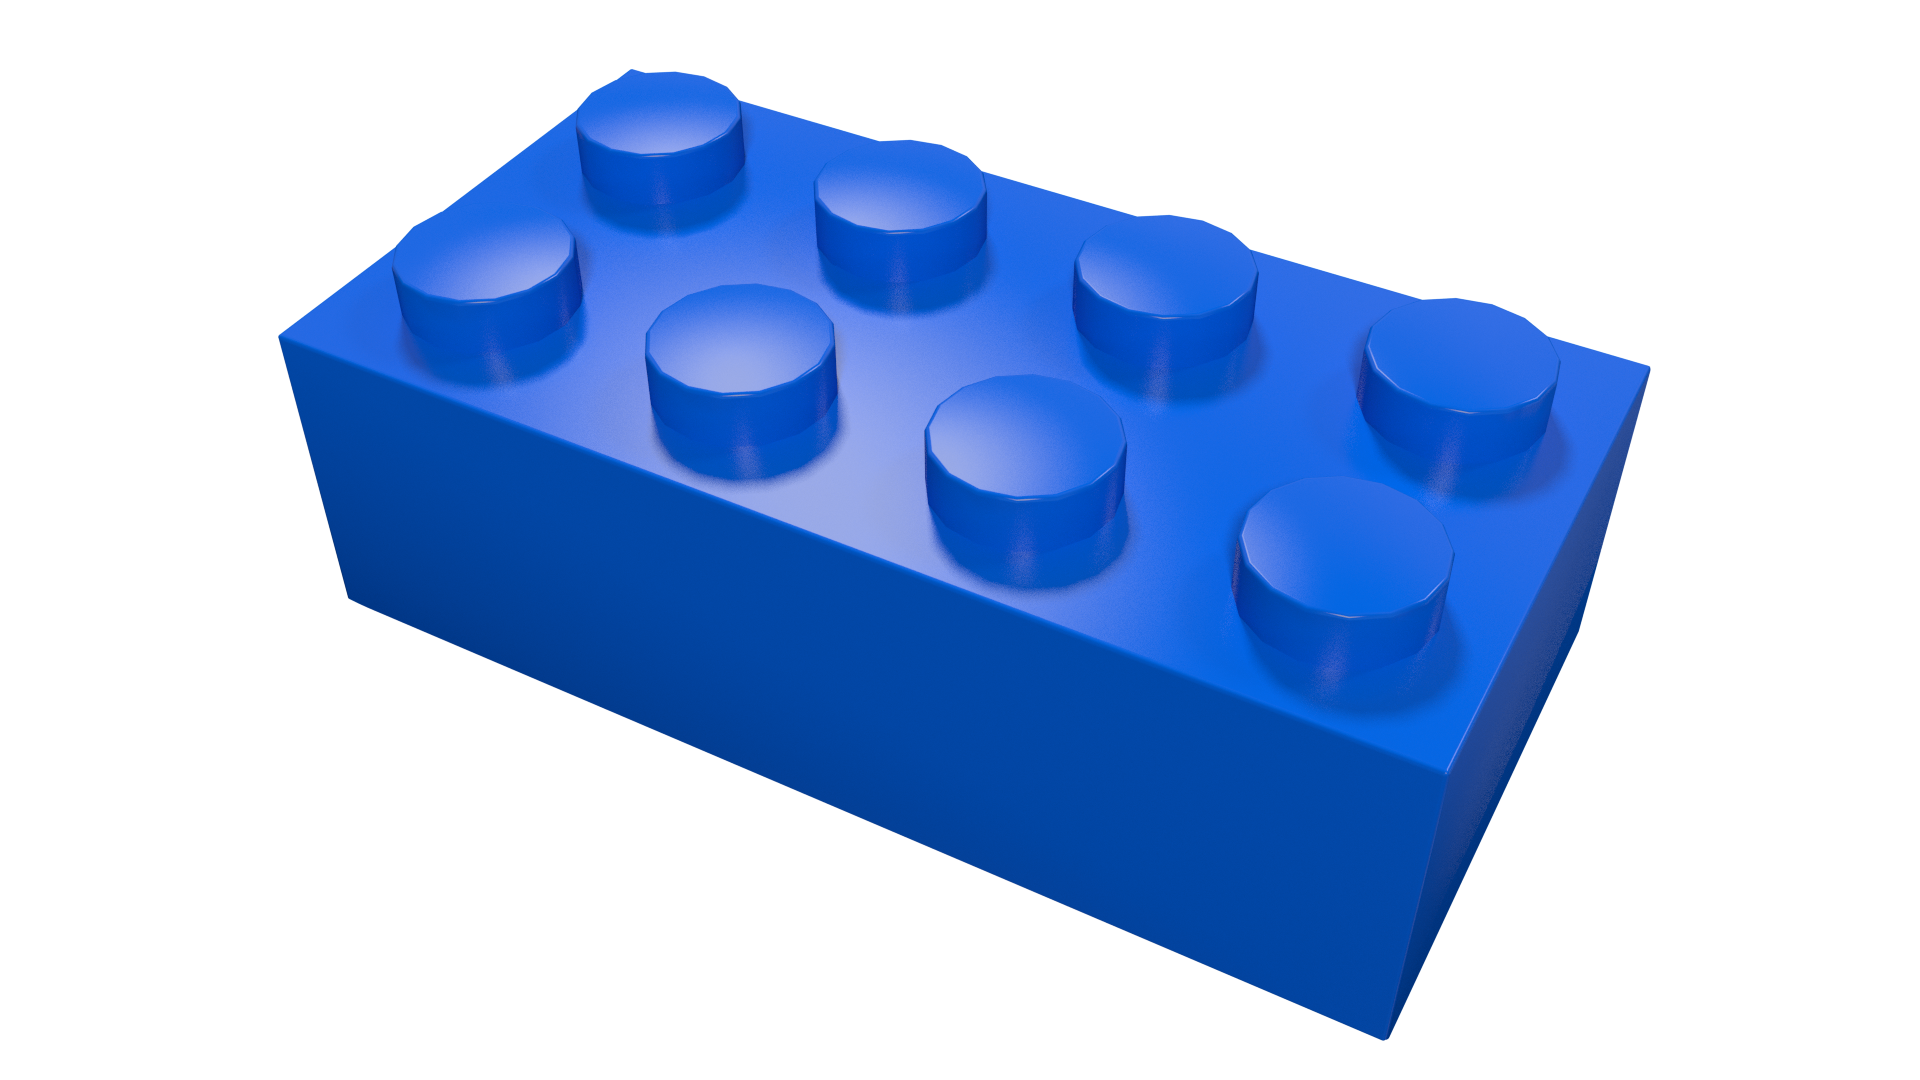 transparent lego dark blue